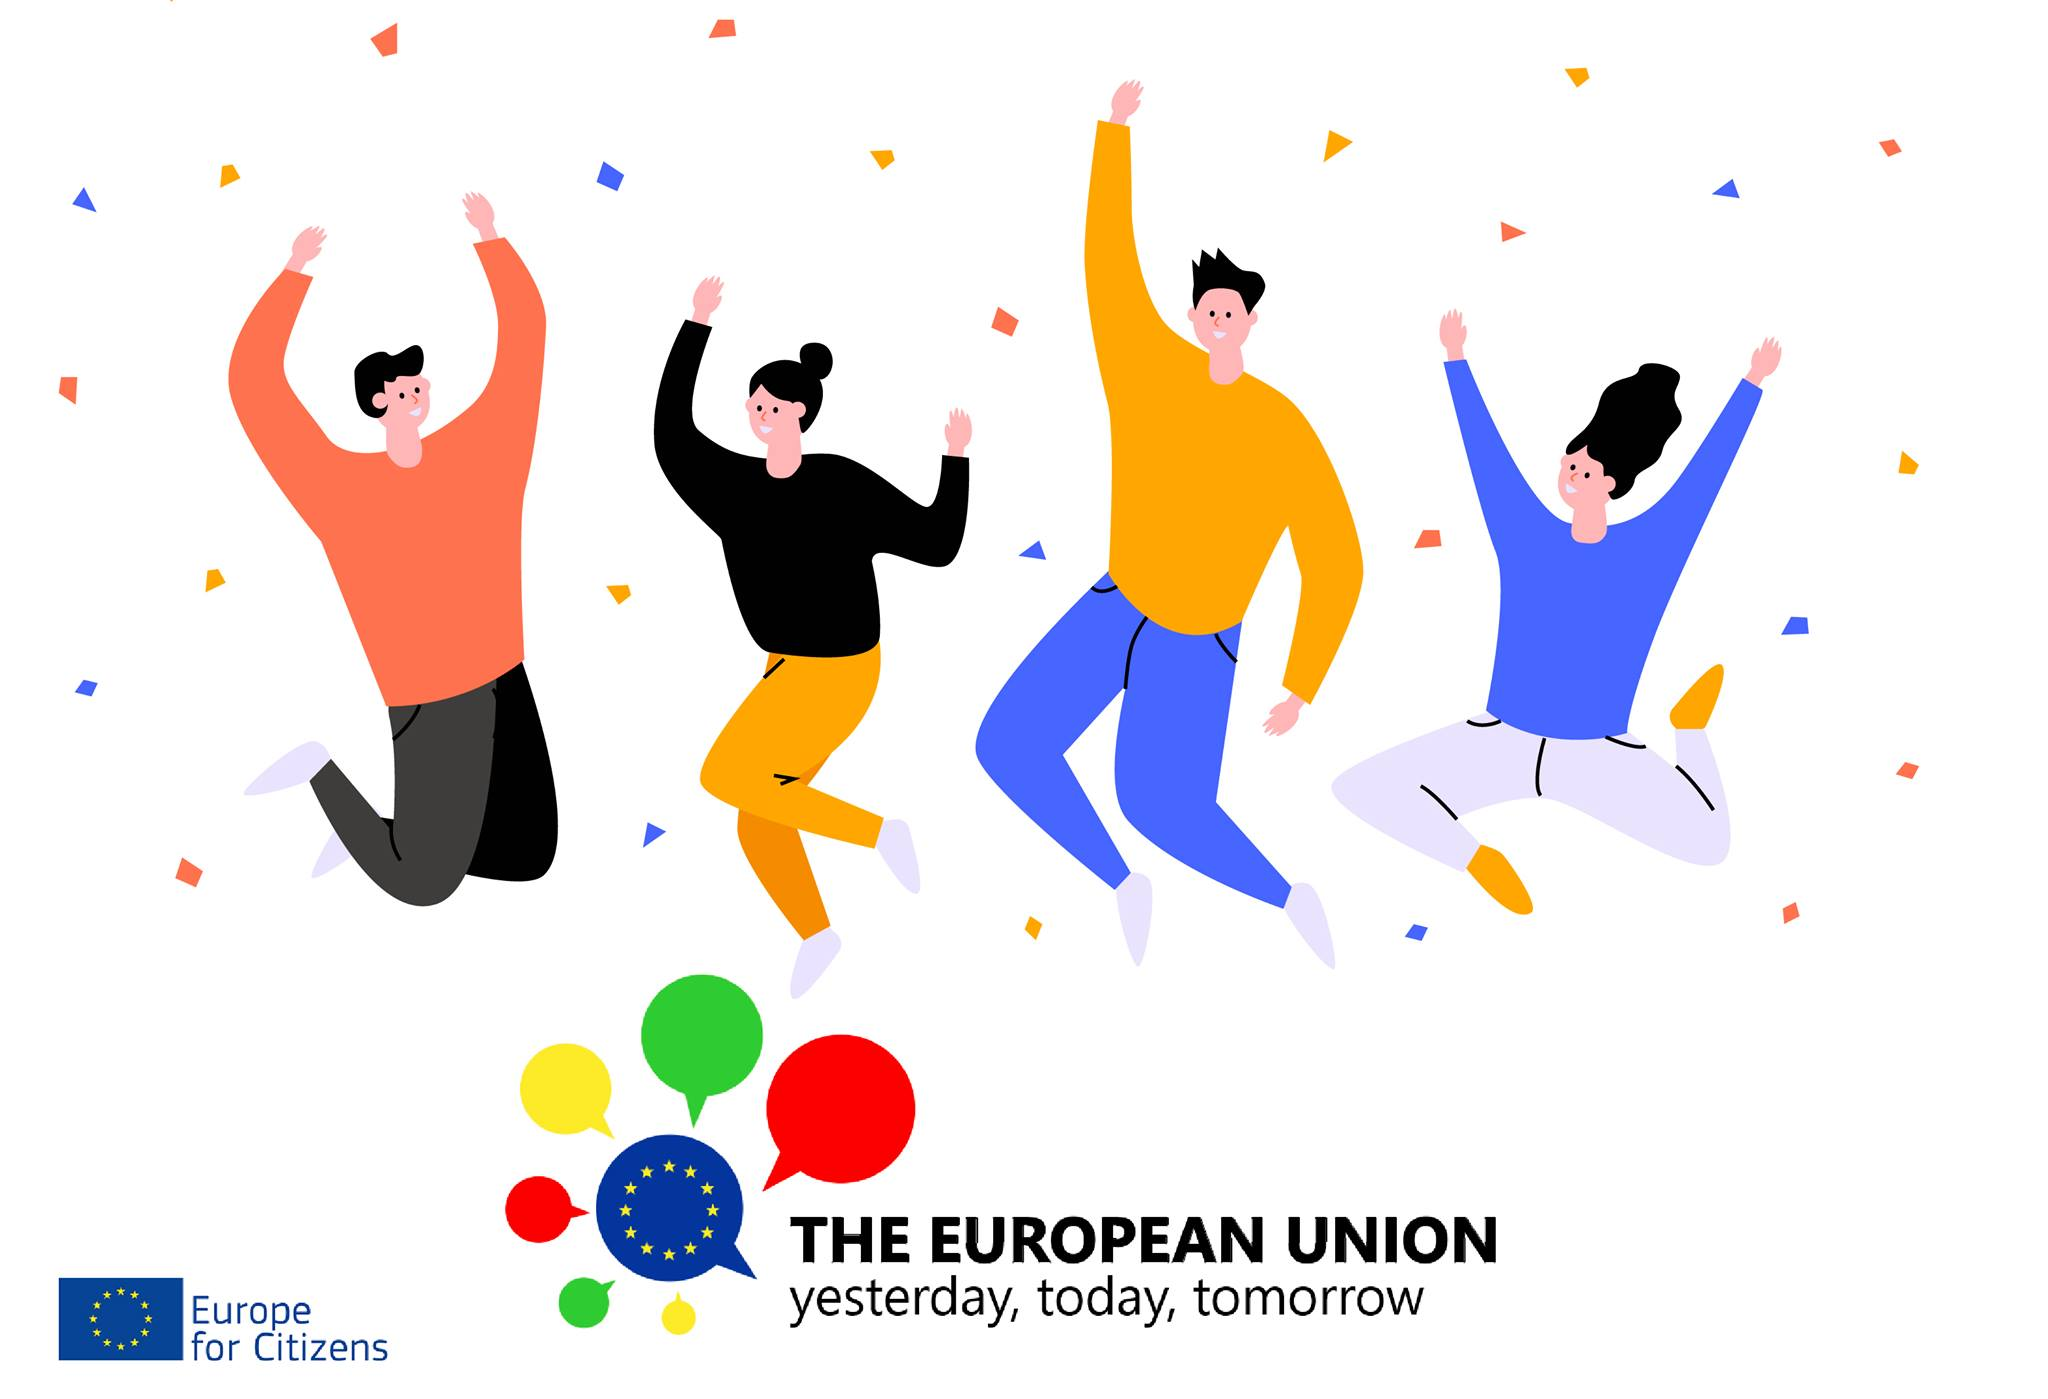 Europe for Citizens Project: The European Union – Past, Present, Future